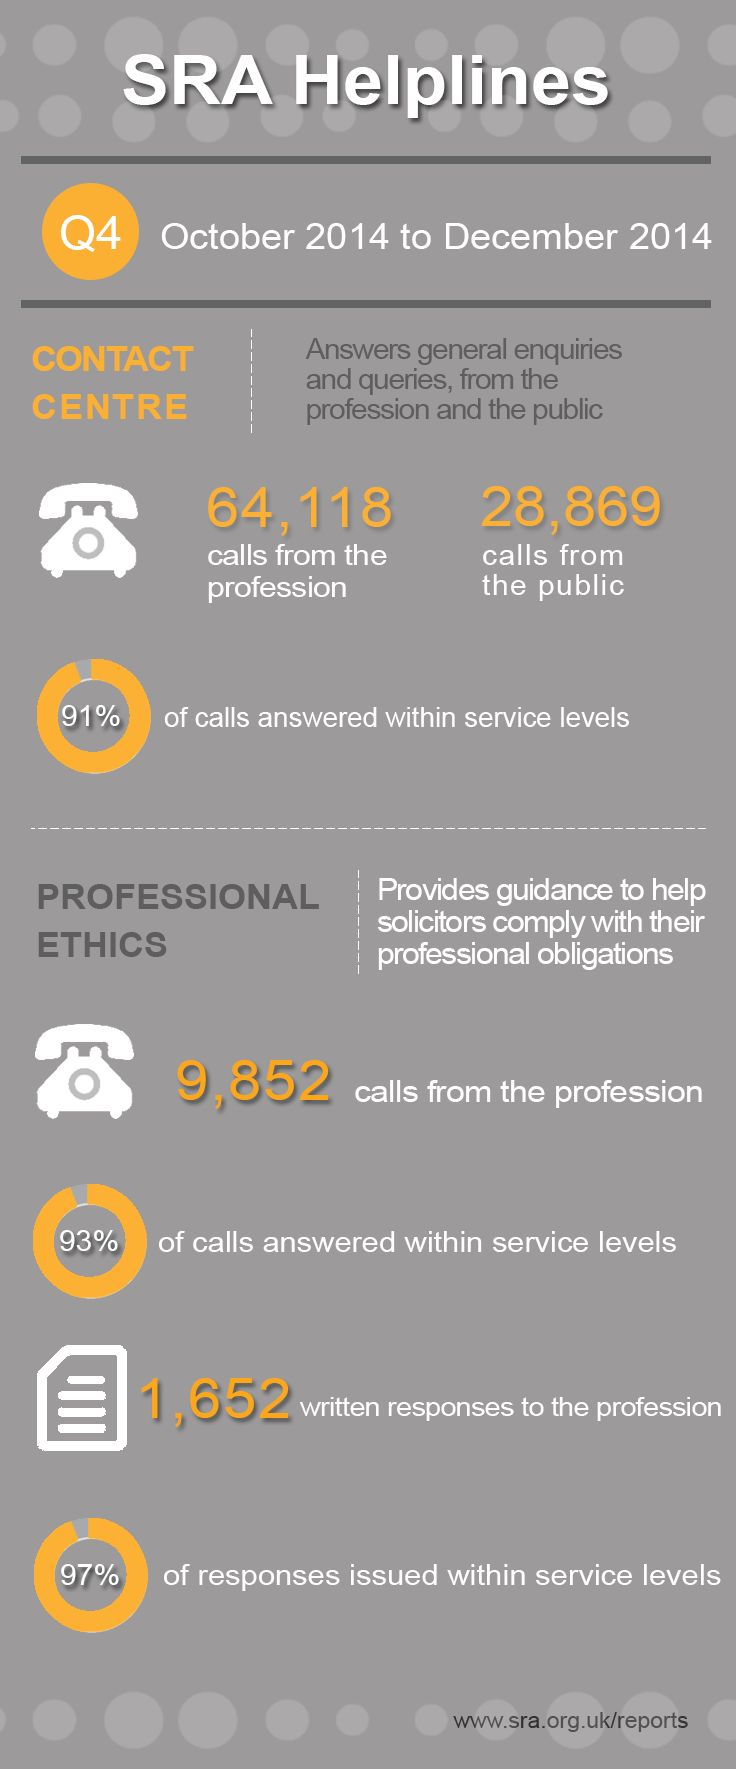 Legal infographic: Solicitors Regulation Authority - Contact Centre and Ethics Guidance helpline statistics for the fourth quarter of 2014.